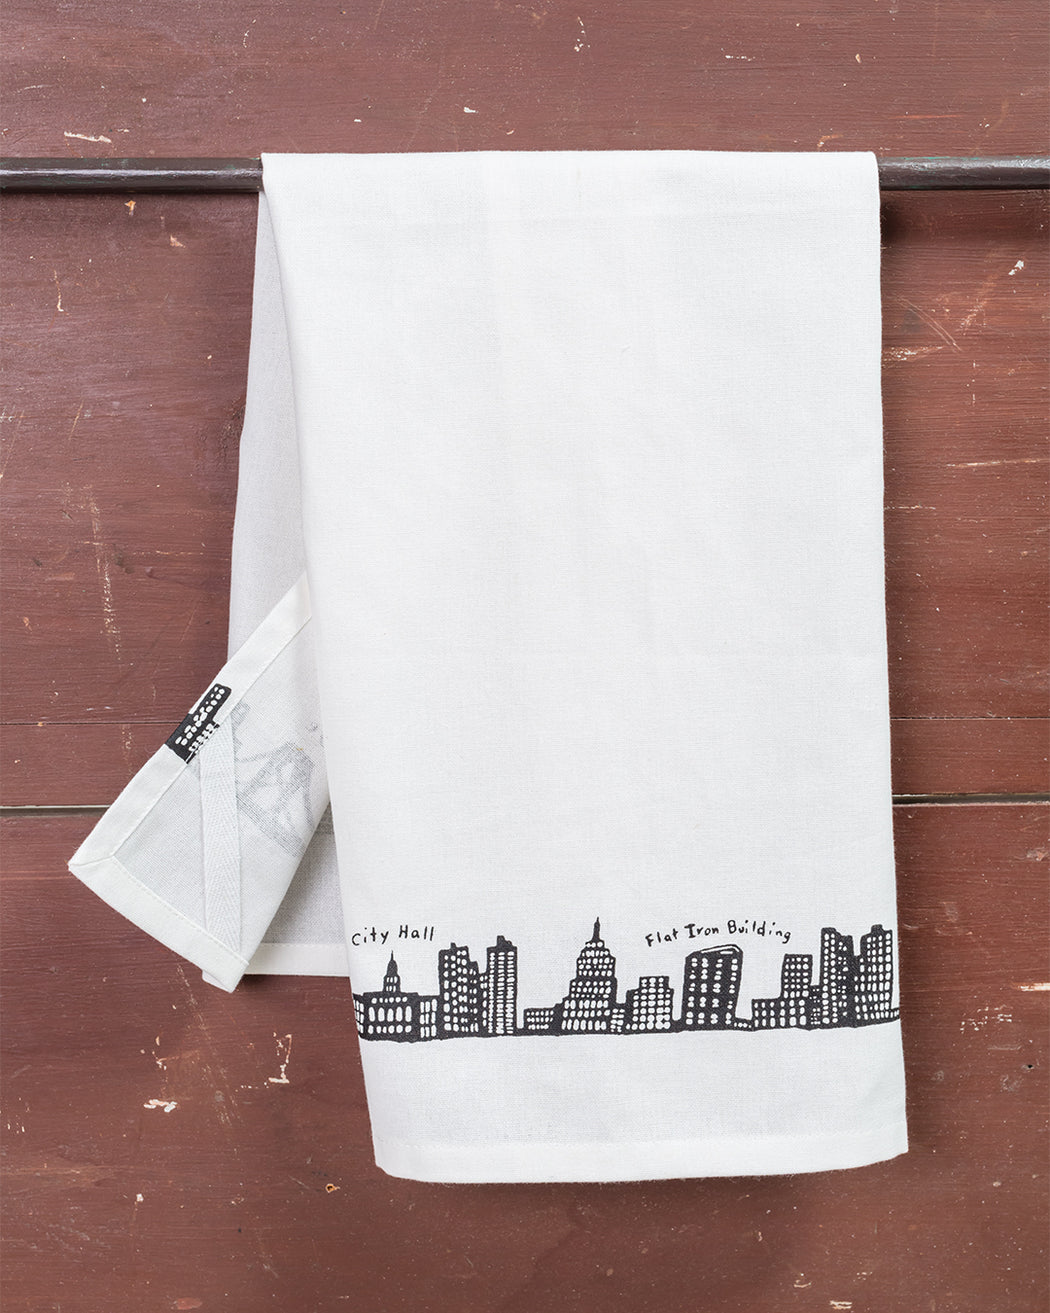 212 Skyline Dish Towel - Fishs Eddy